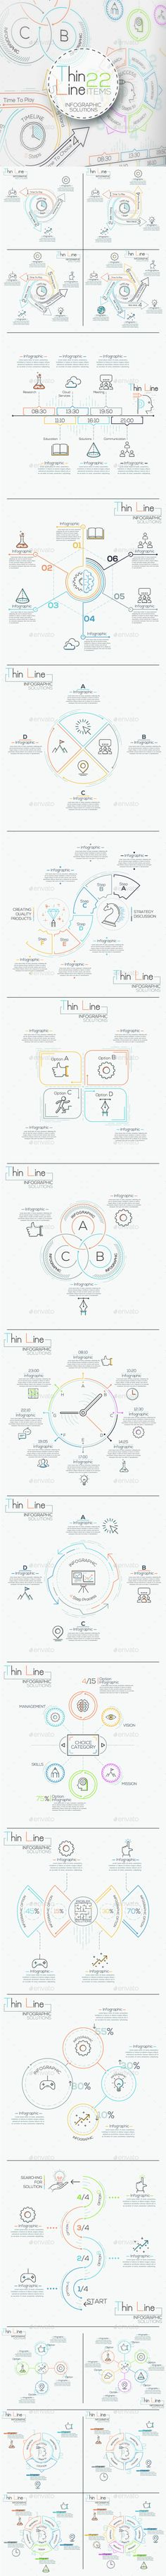 Thin Line Infographic Set Template PSD, Vector EPS, AI Illustrator. Download here: https://graphicriver.net/item/thin-line-infographic-set/16930311?ref=ksioks